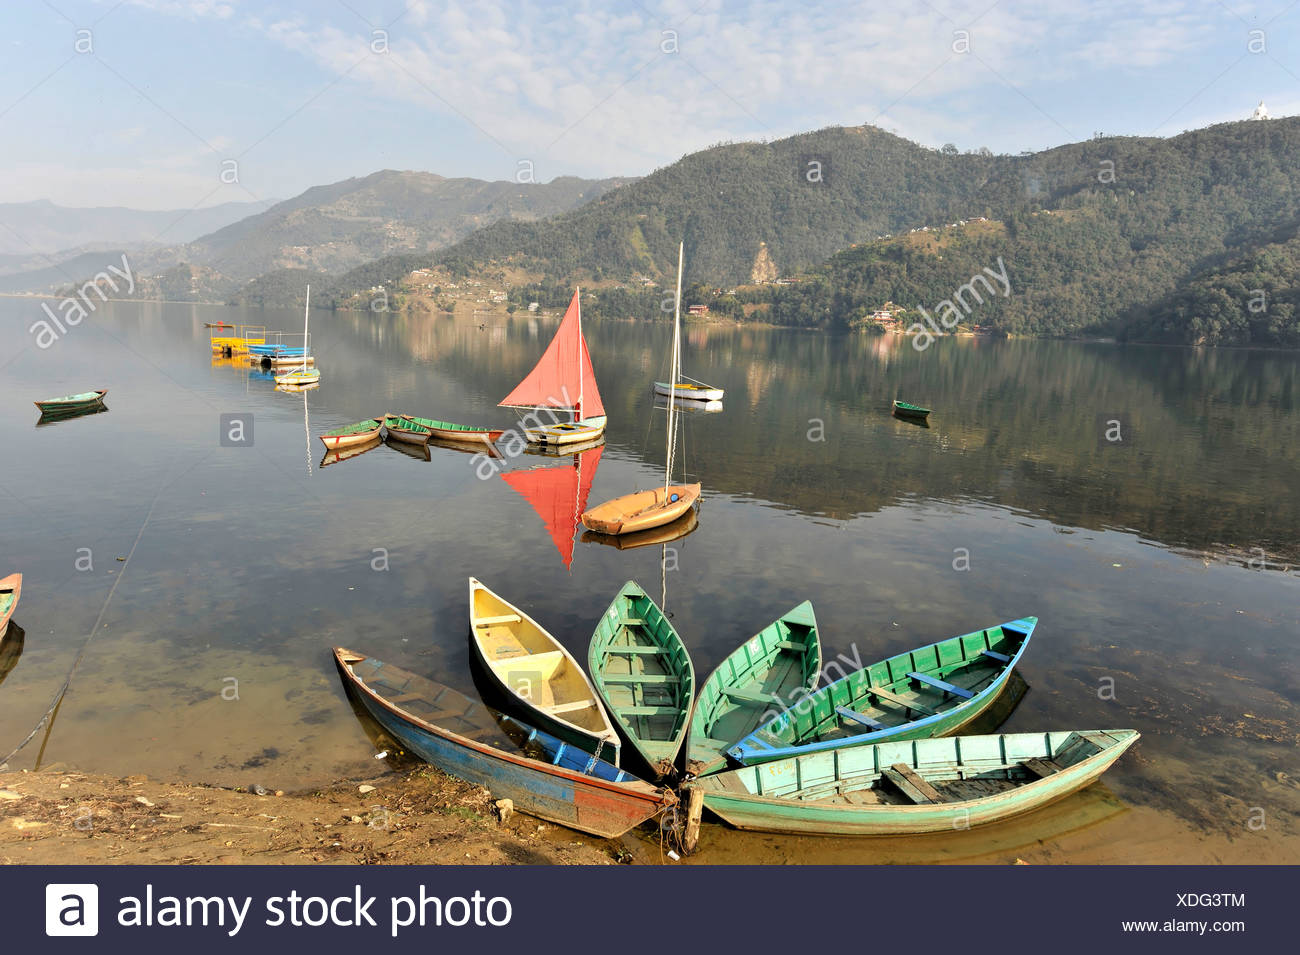 Rowing boats, view of the Phewa Lake, Pokhara, Nepal, Asia - Stock Image